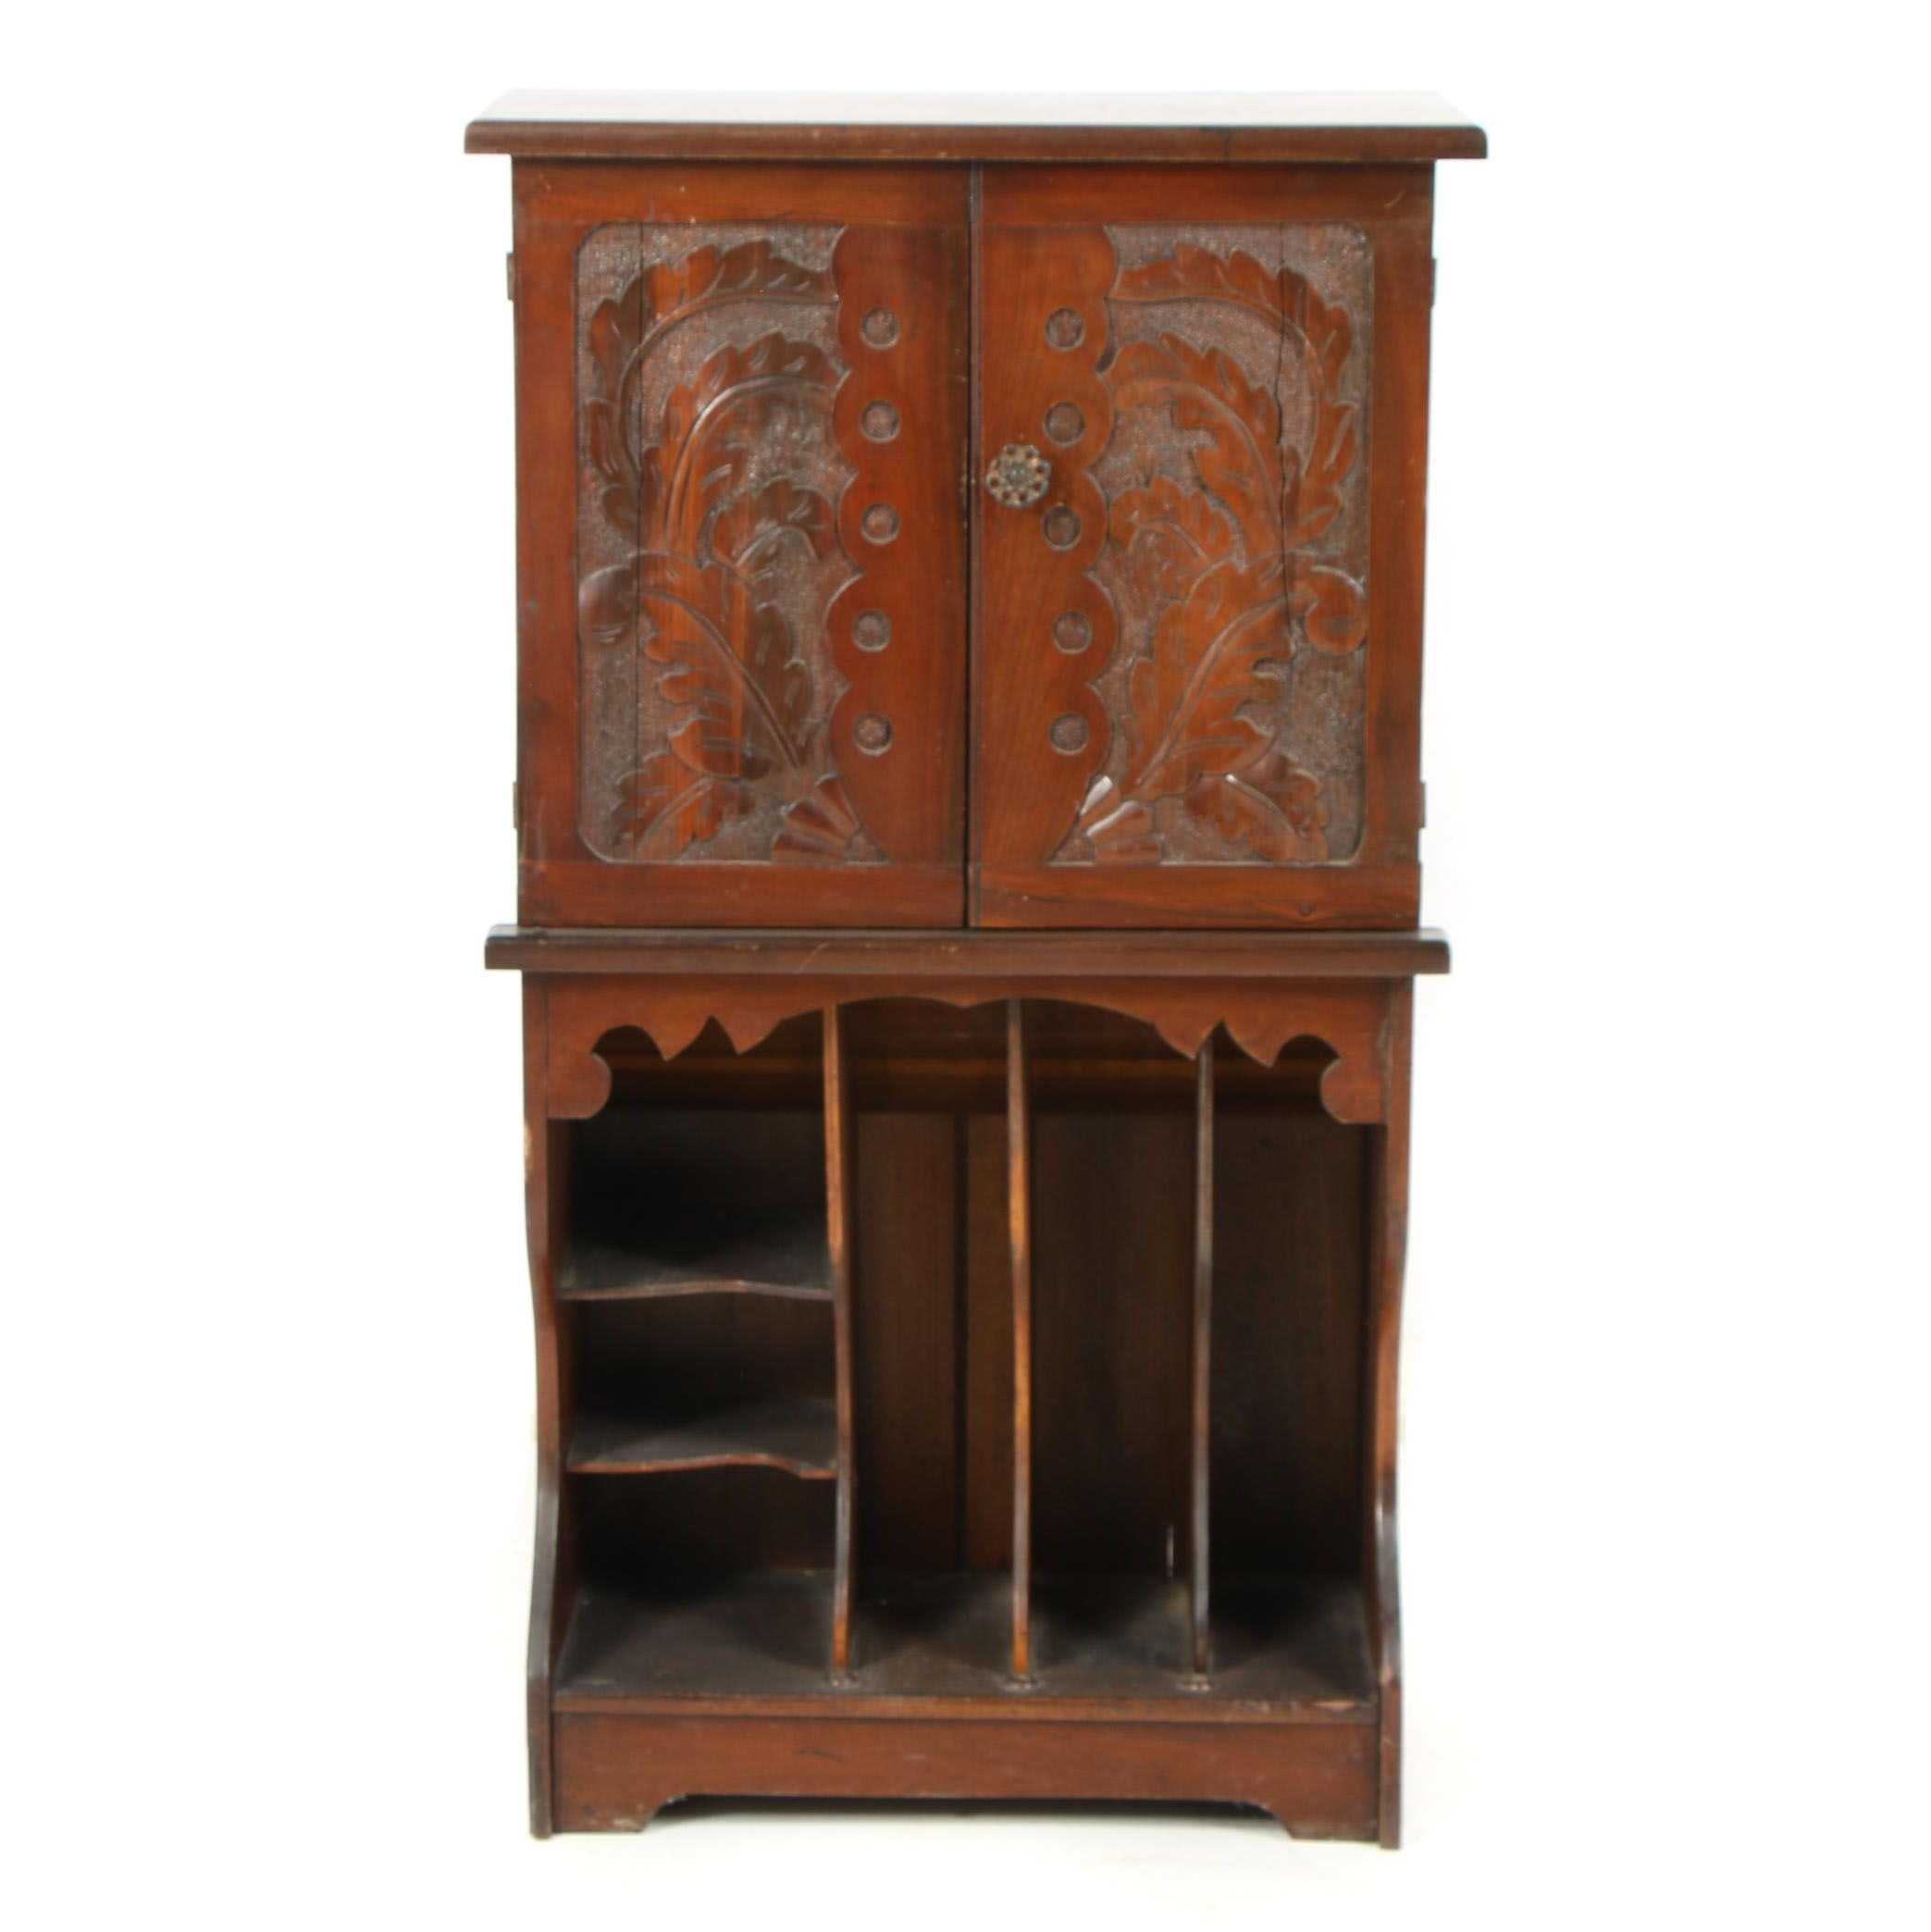 Carved Walnut Sheet Music Storage Cabinet, Early 20th Century